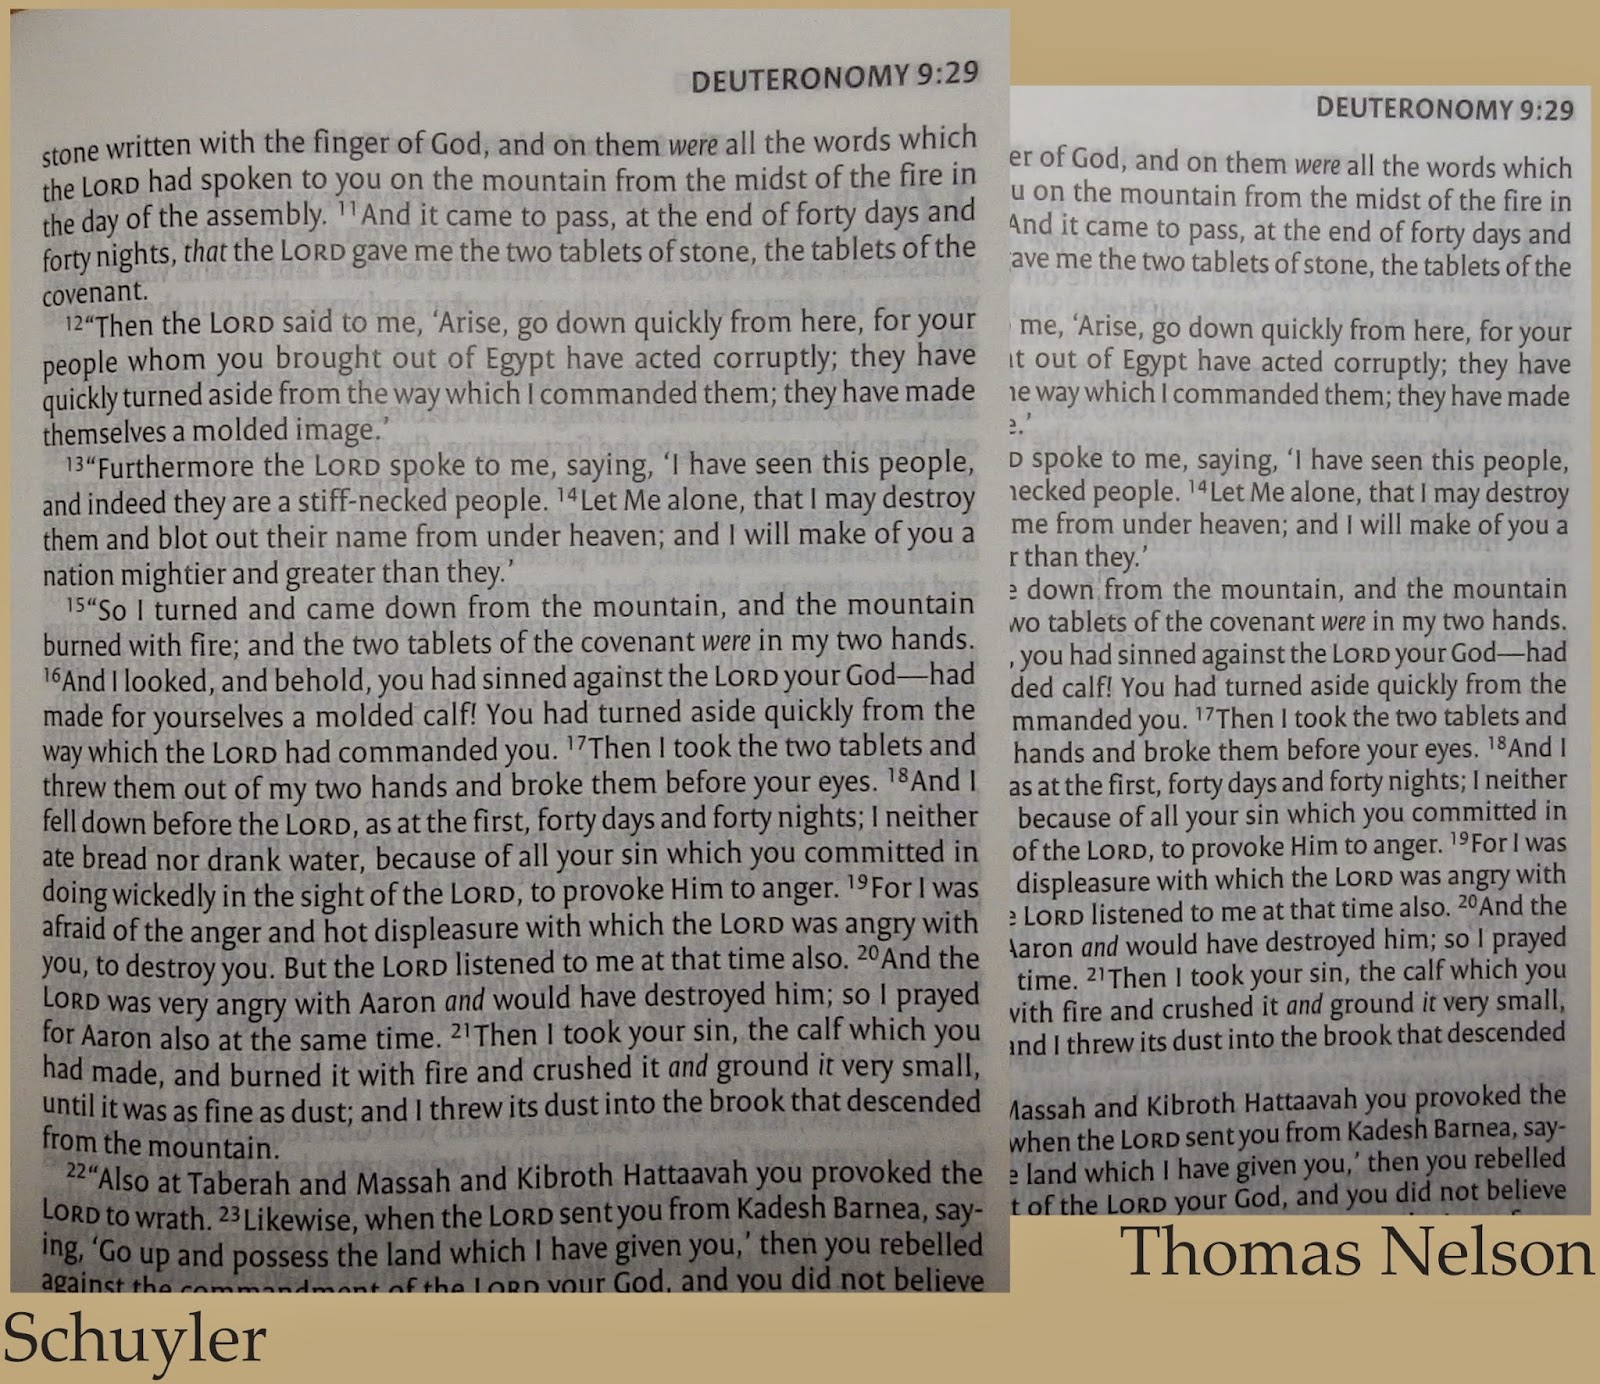 The Schuyler on the left has a slightly larger font.